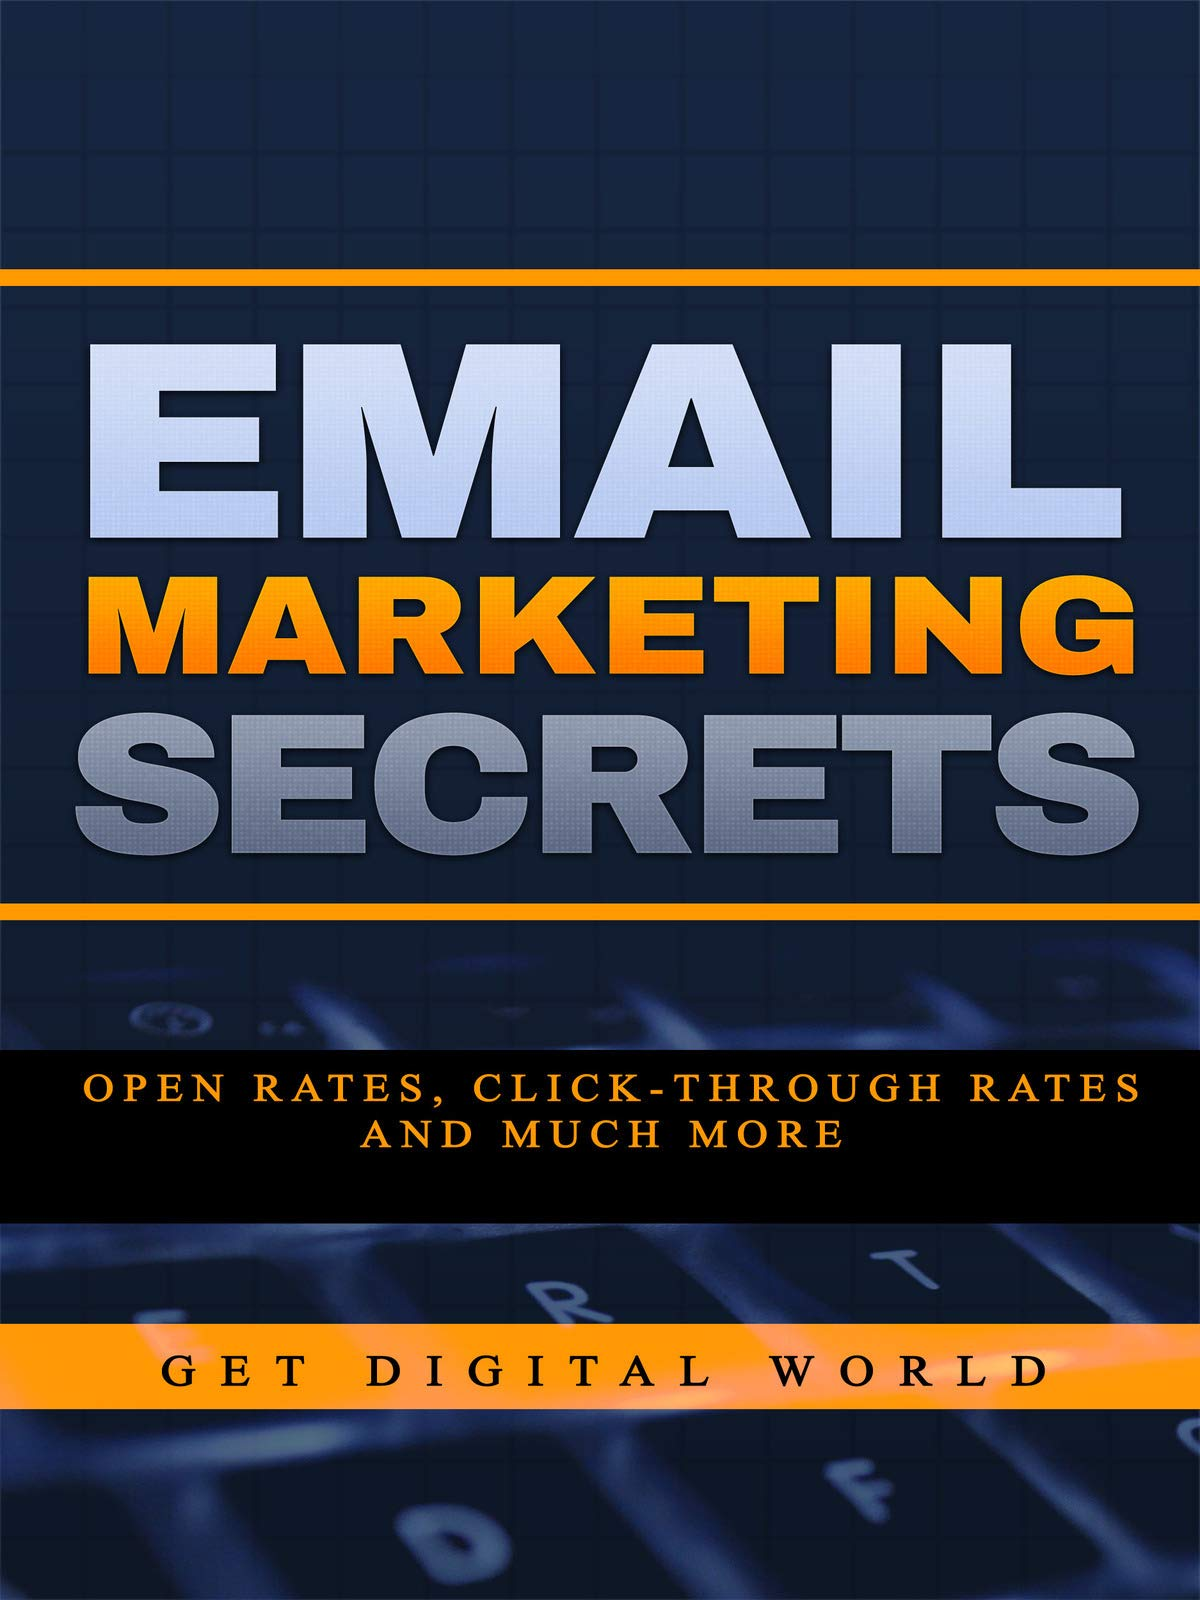 Email Marketing Secrets: Open Rates, Click-Through Rates & Much More